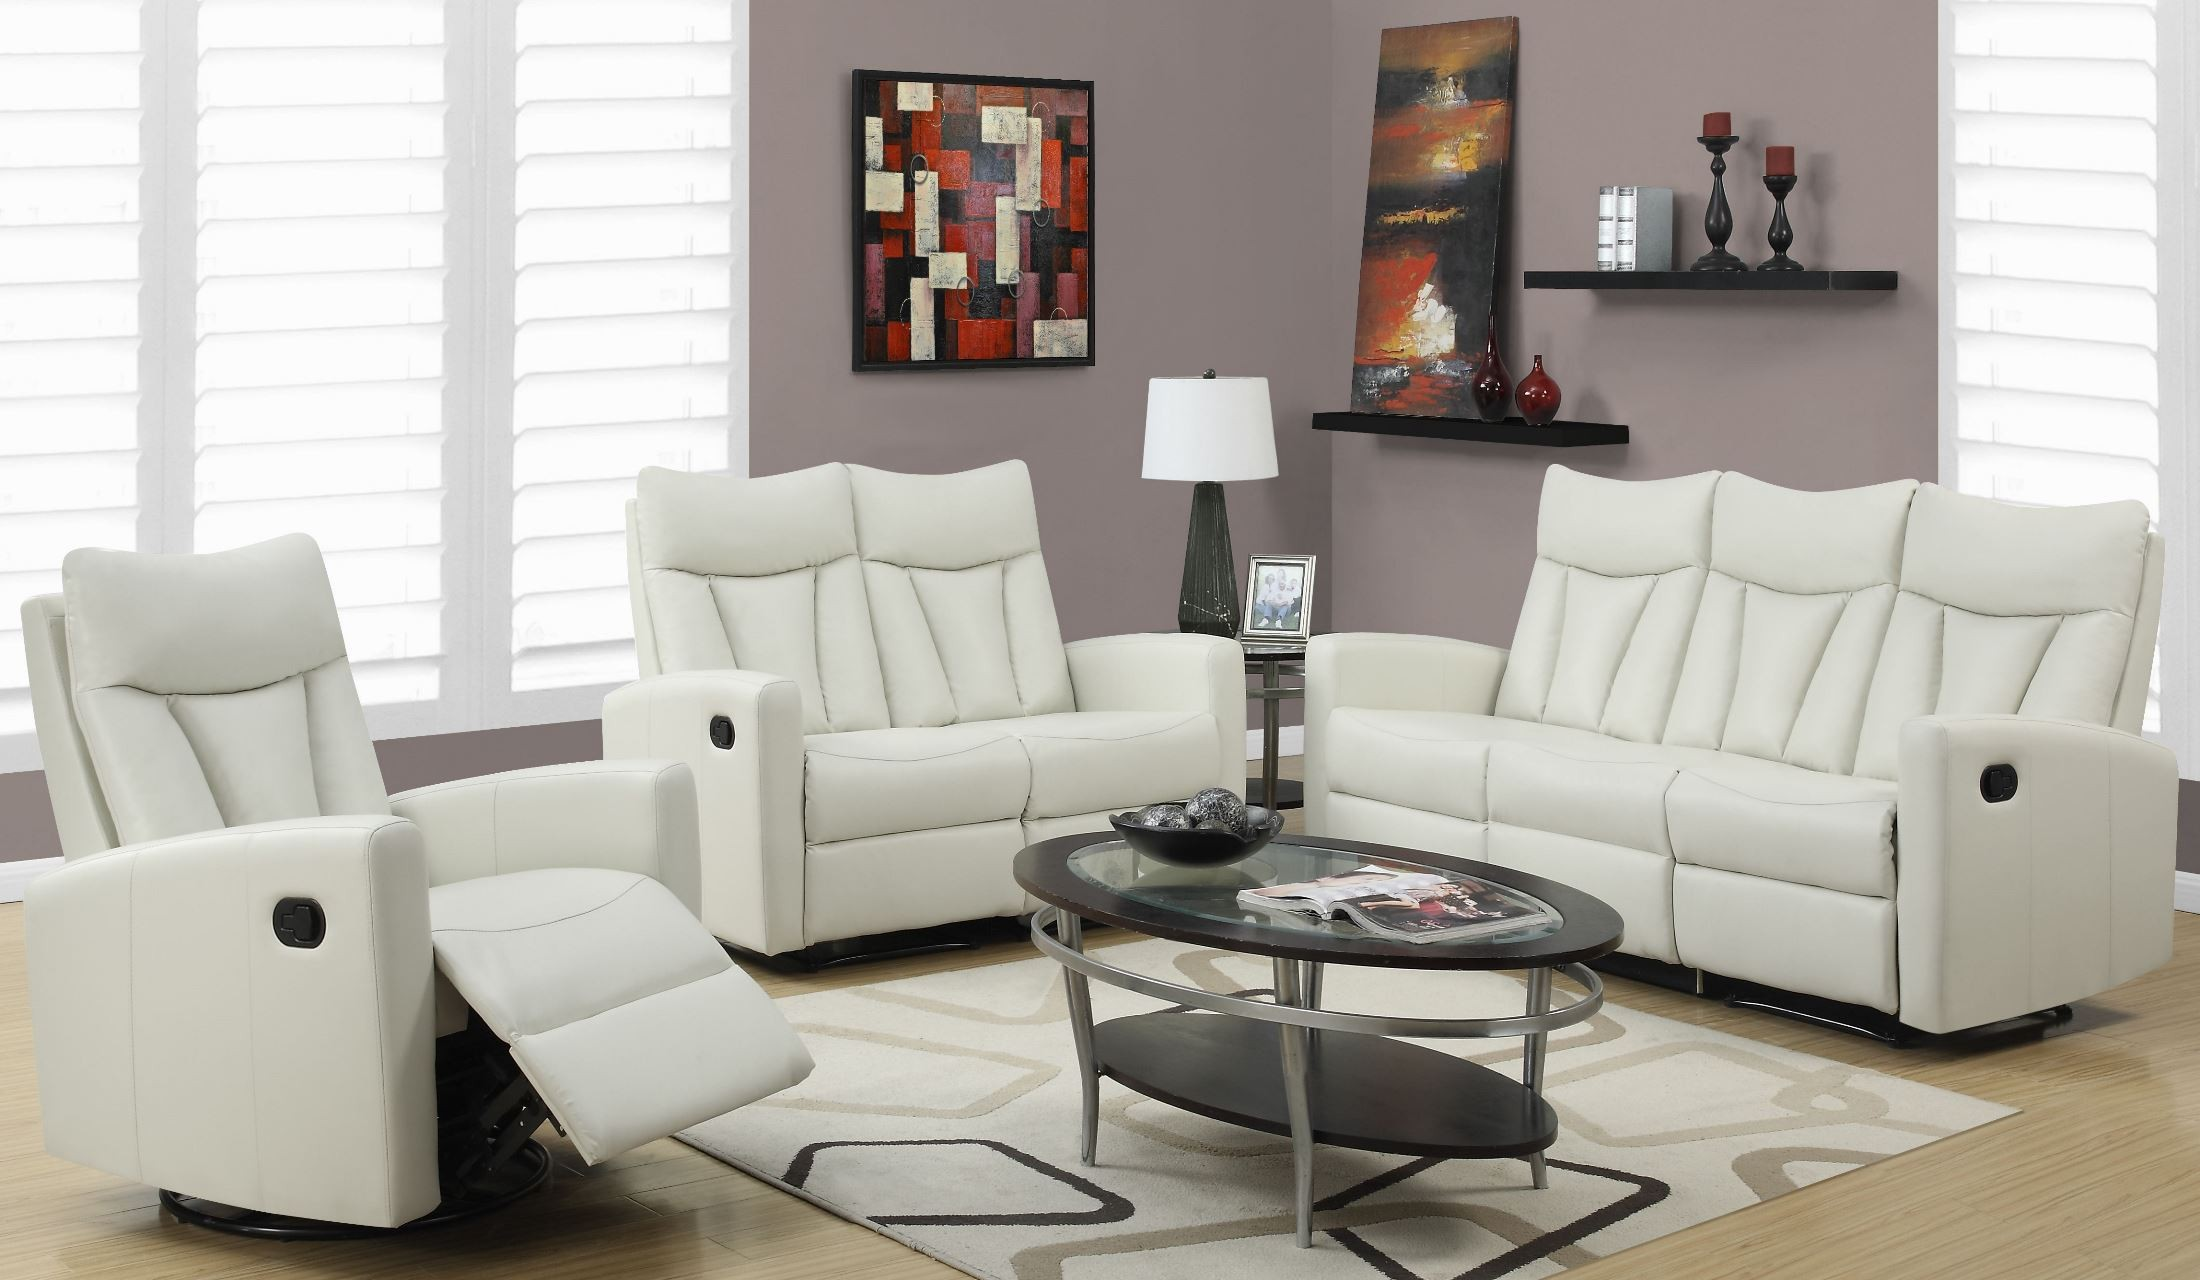 87iv 3 Ivory Bonded Leather Reclining Living Room Set From